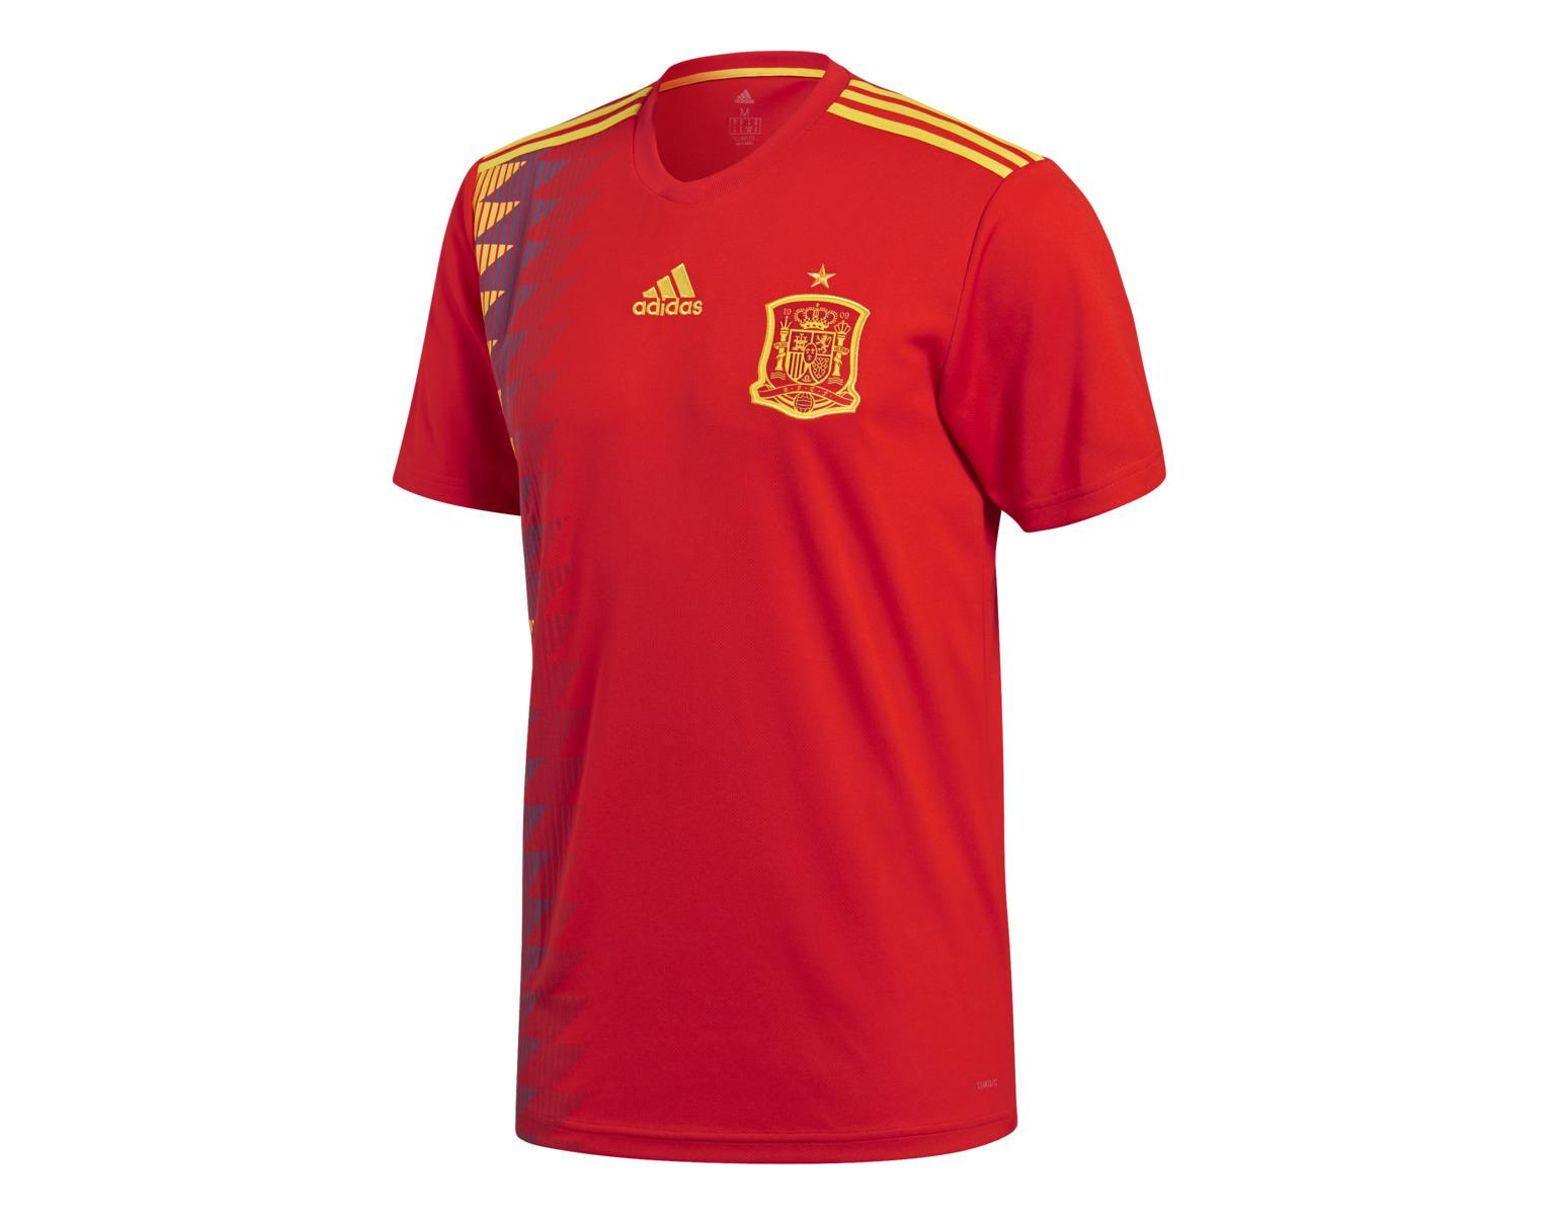 5fa904d2520 adidas Spanish National Football Team 2018 Home Strip T-shirt in Red for  Men - Lyst